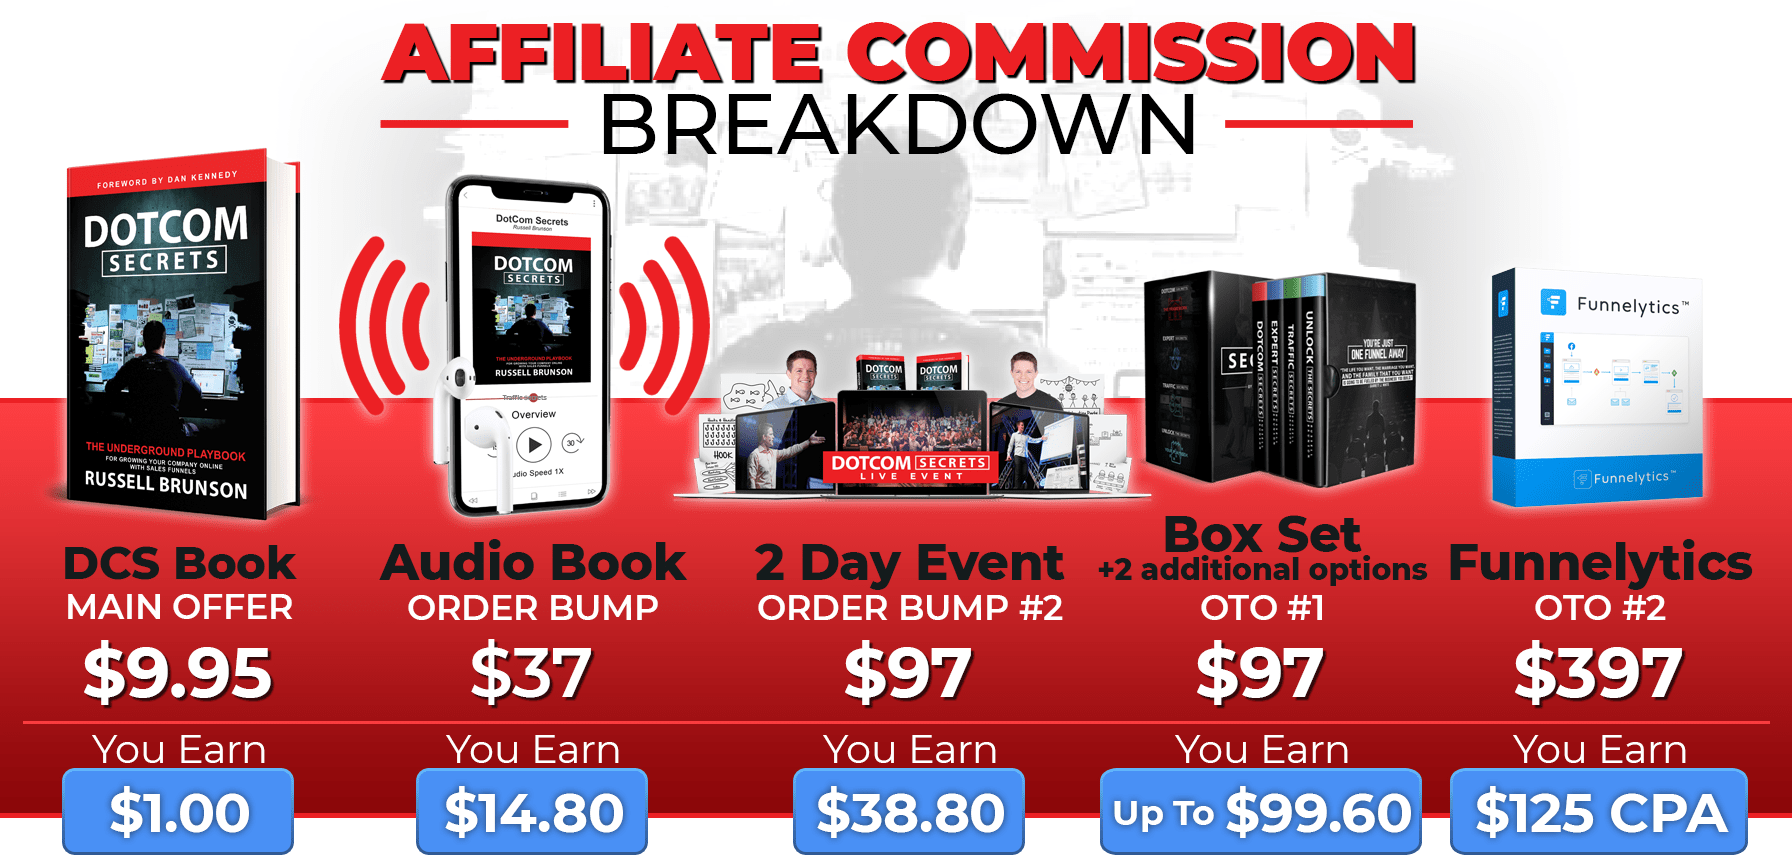 DotCom Secrets Affiliate Commission Breakdown